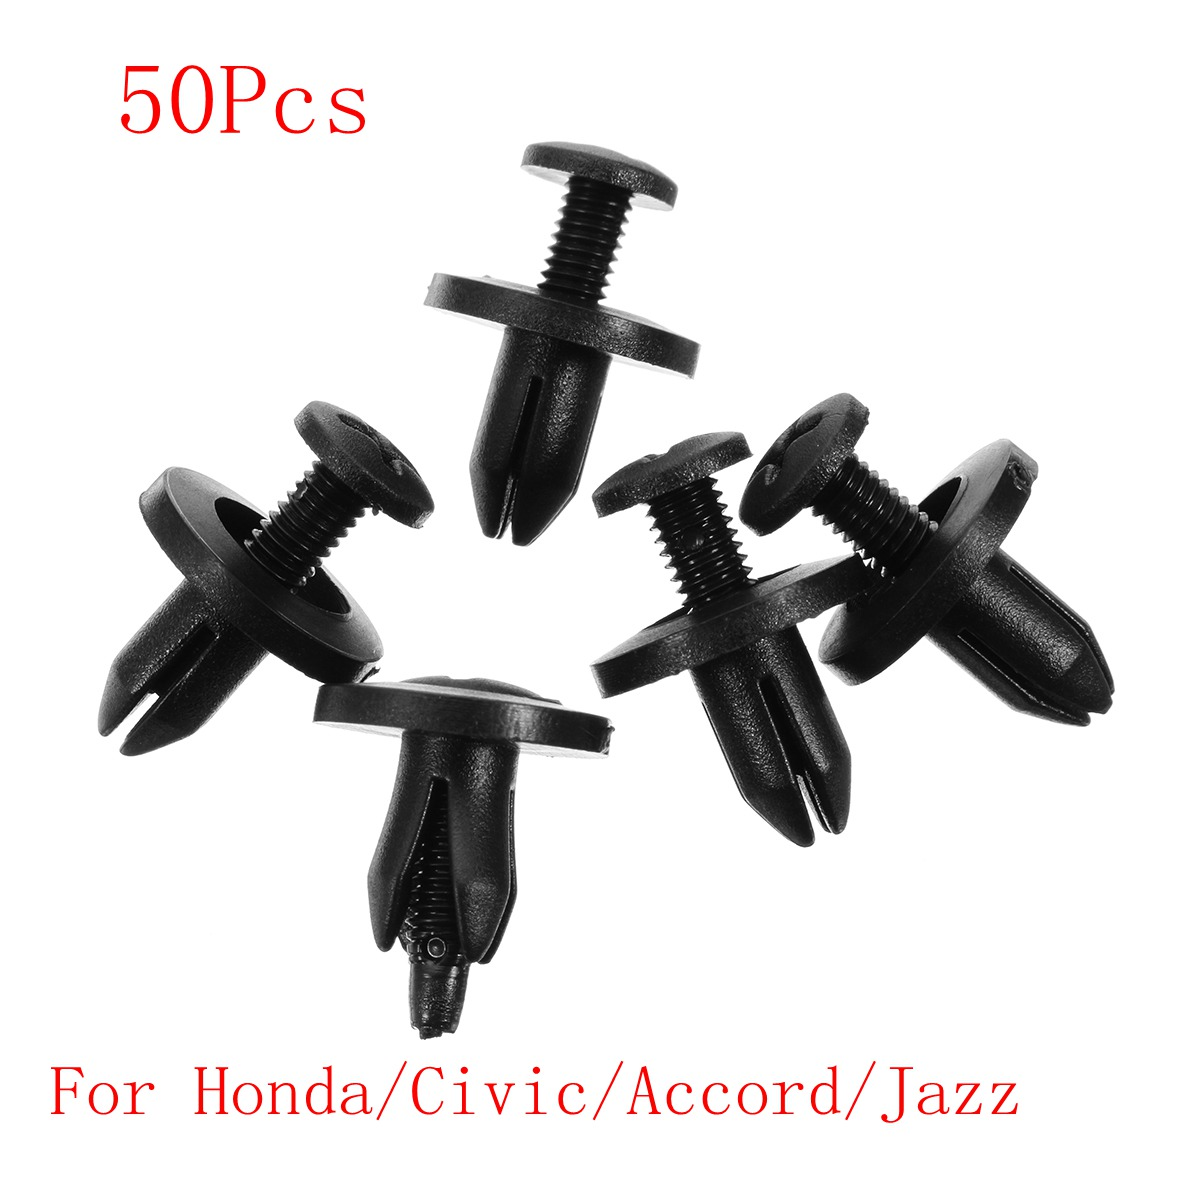 50Pcs 6mm Clips Car Bumper Cover Diversion Fenders Plate Swell Auto Plastic Fastener For Honda/Civic/Accord/Jazz